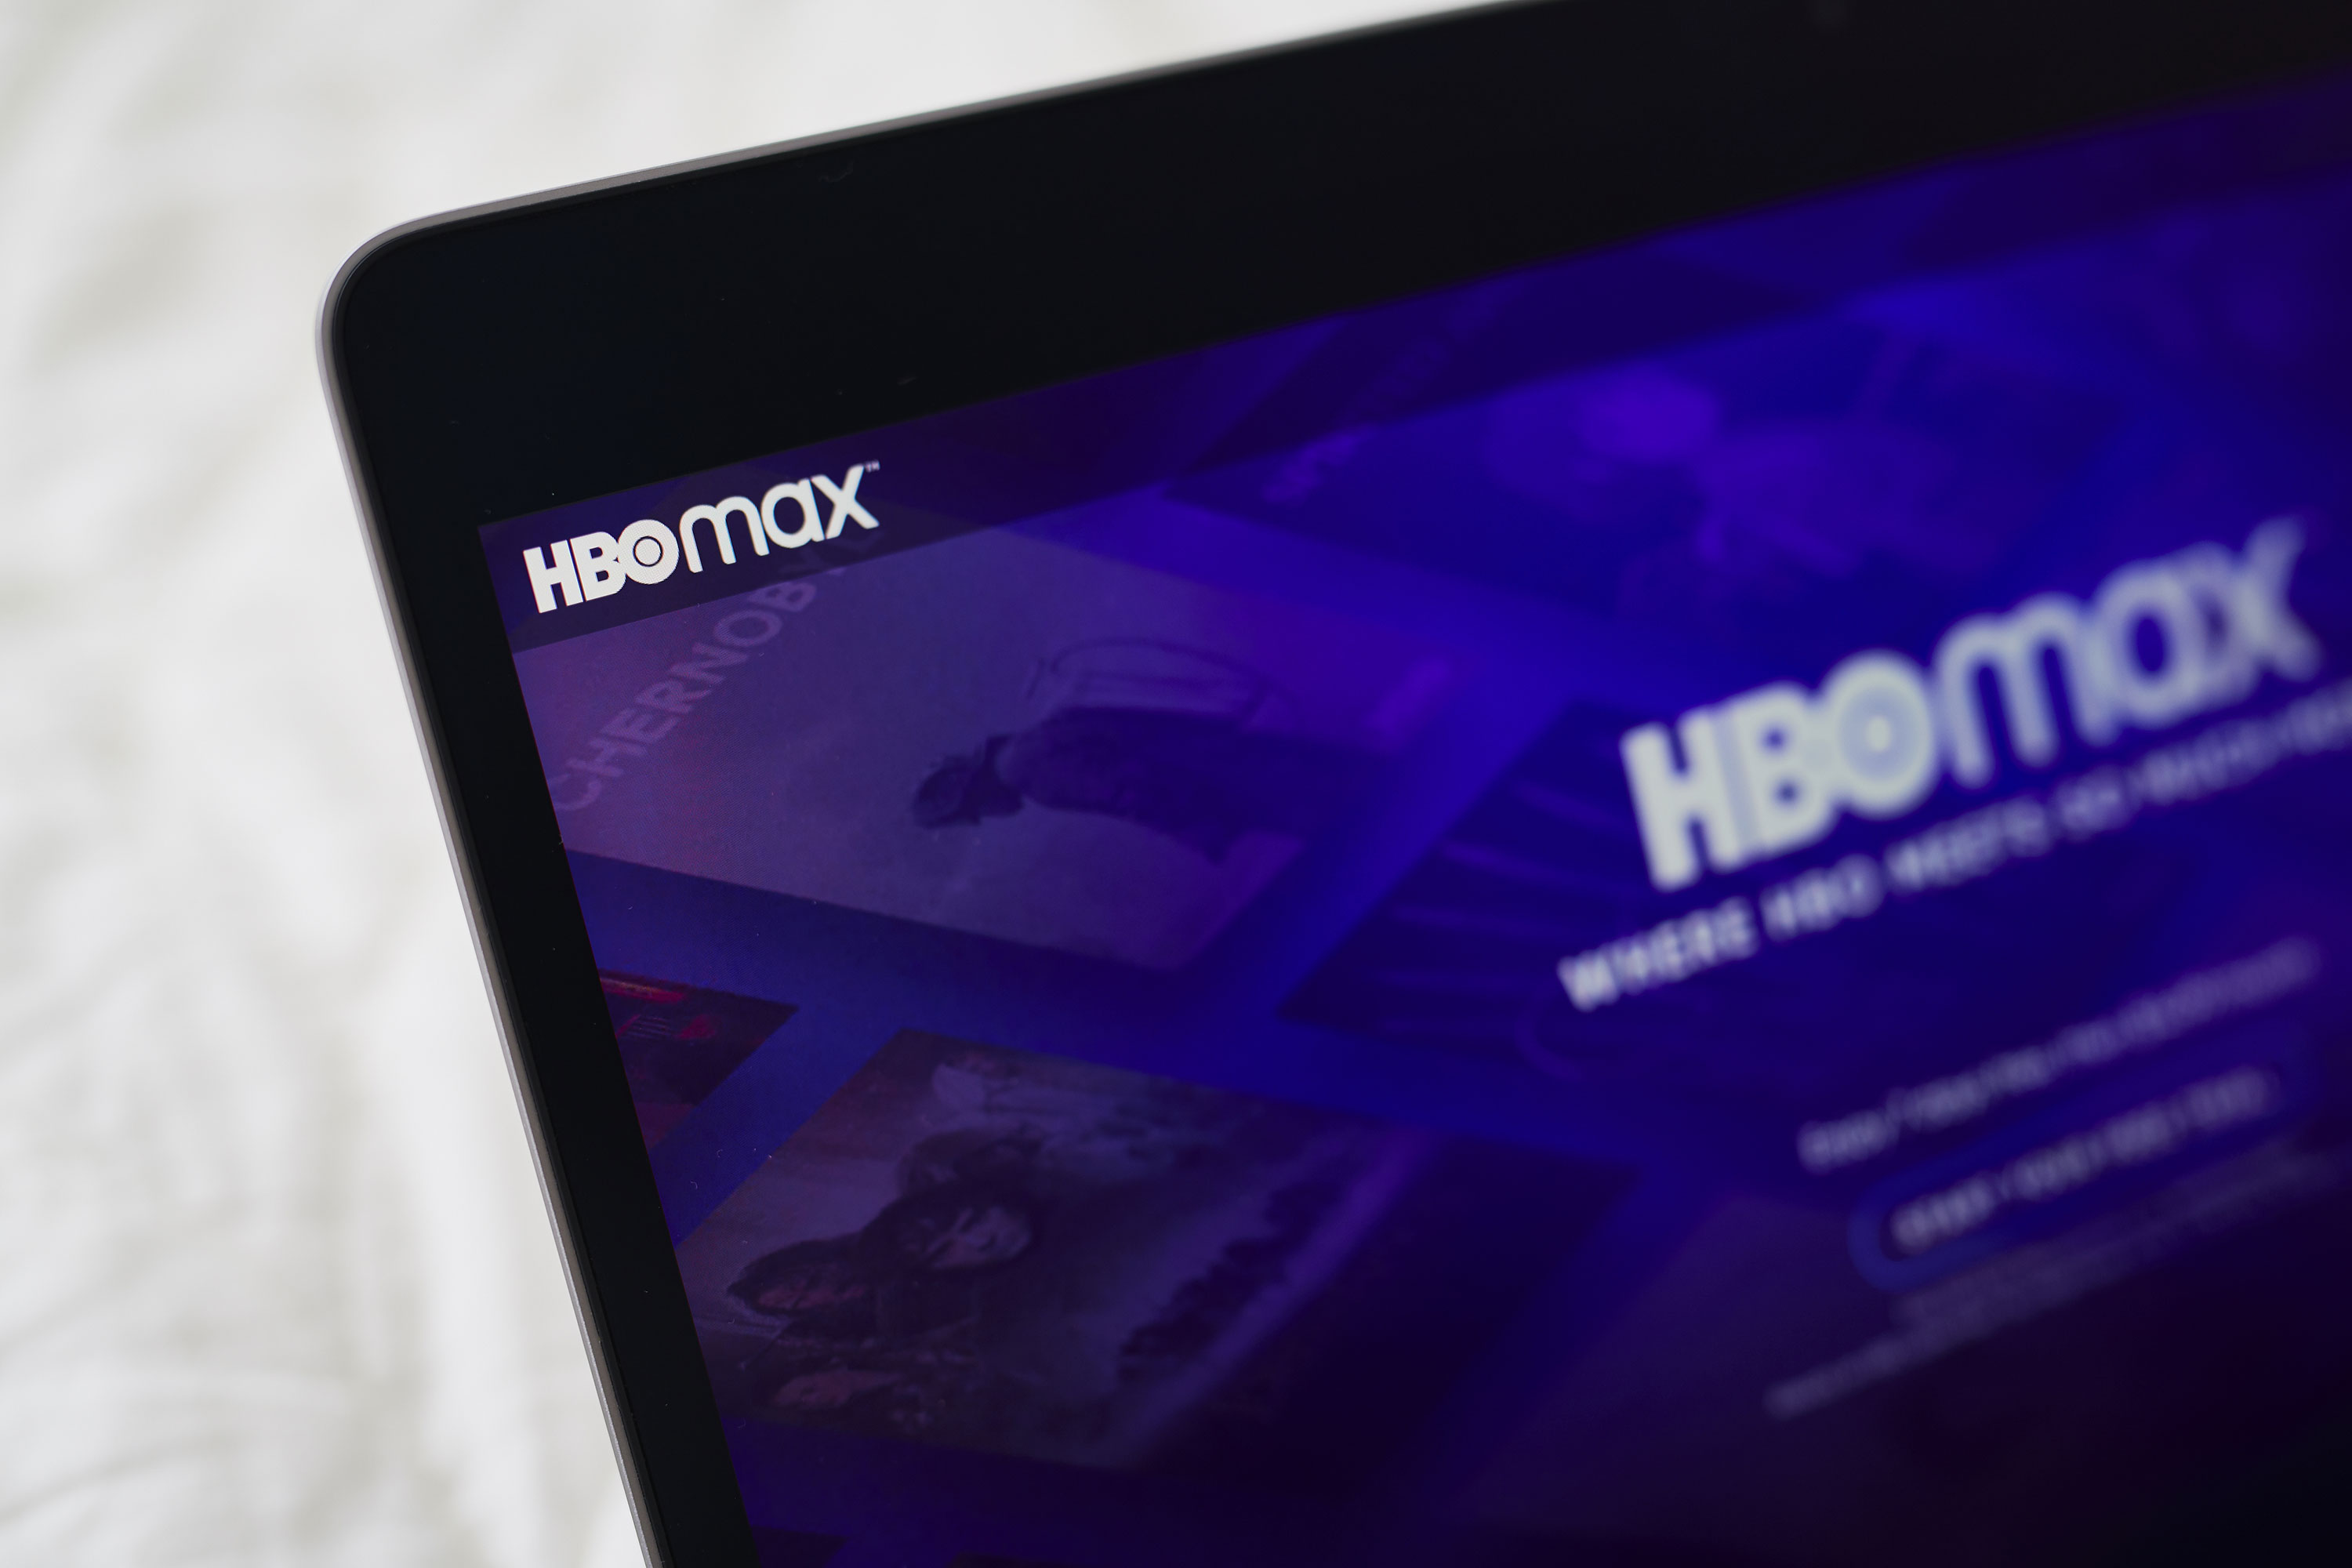 HBO Max has added 8.6 million US subscribers